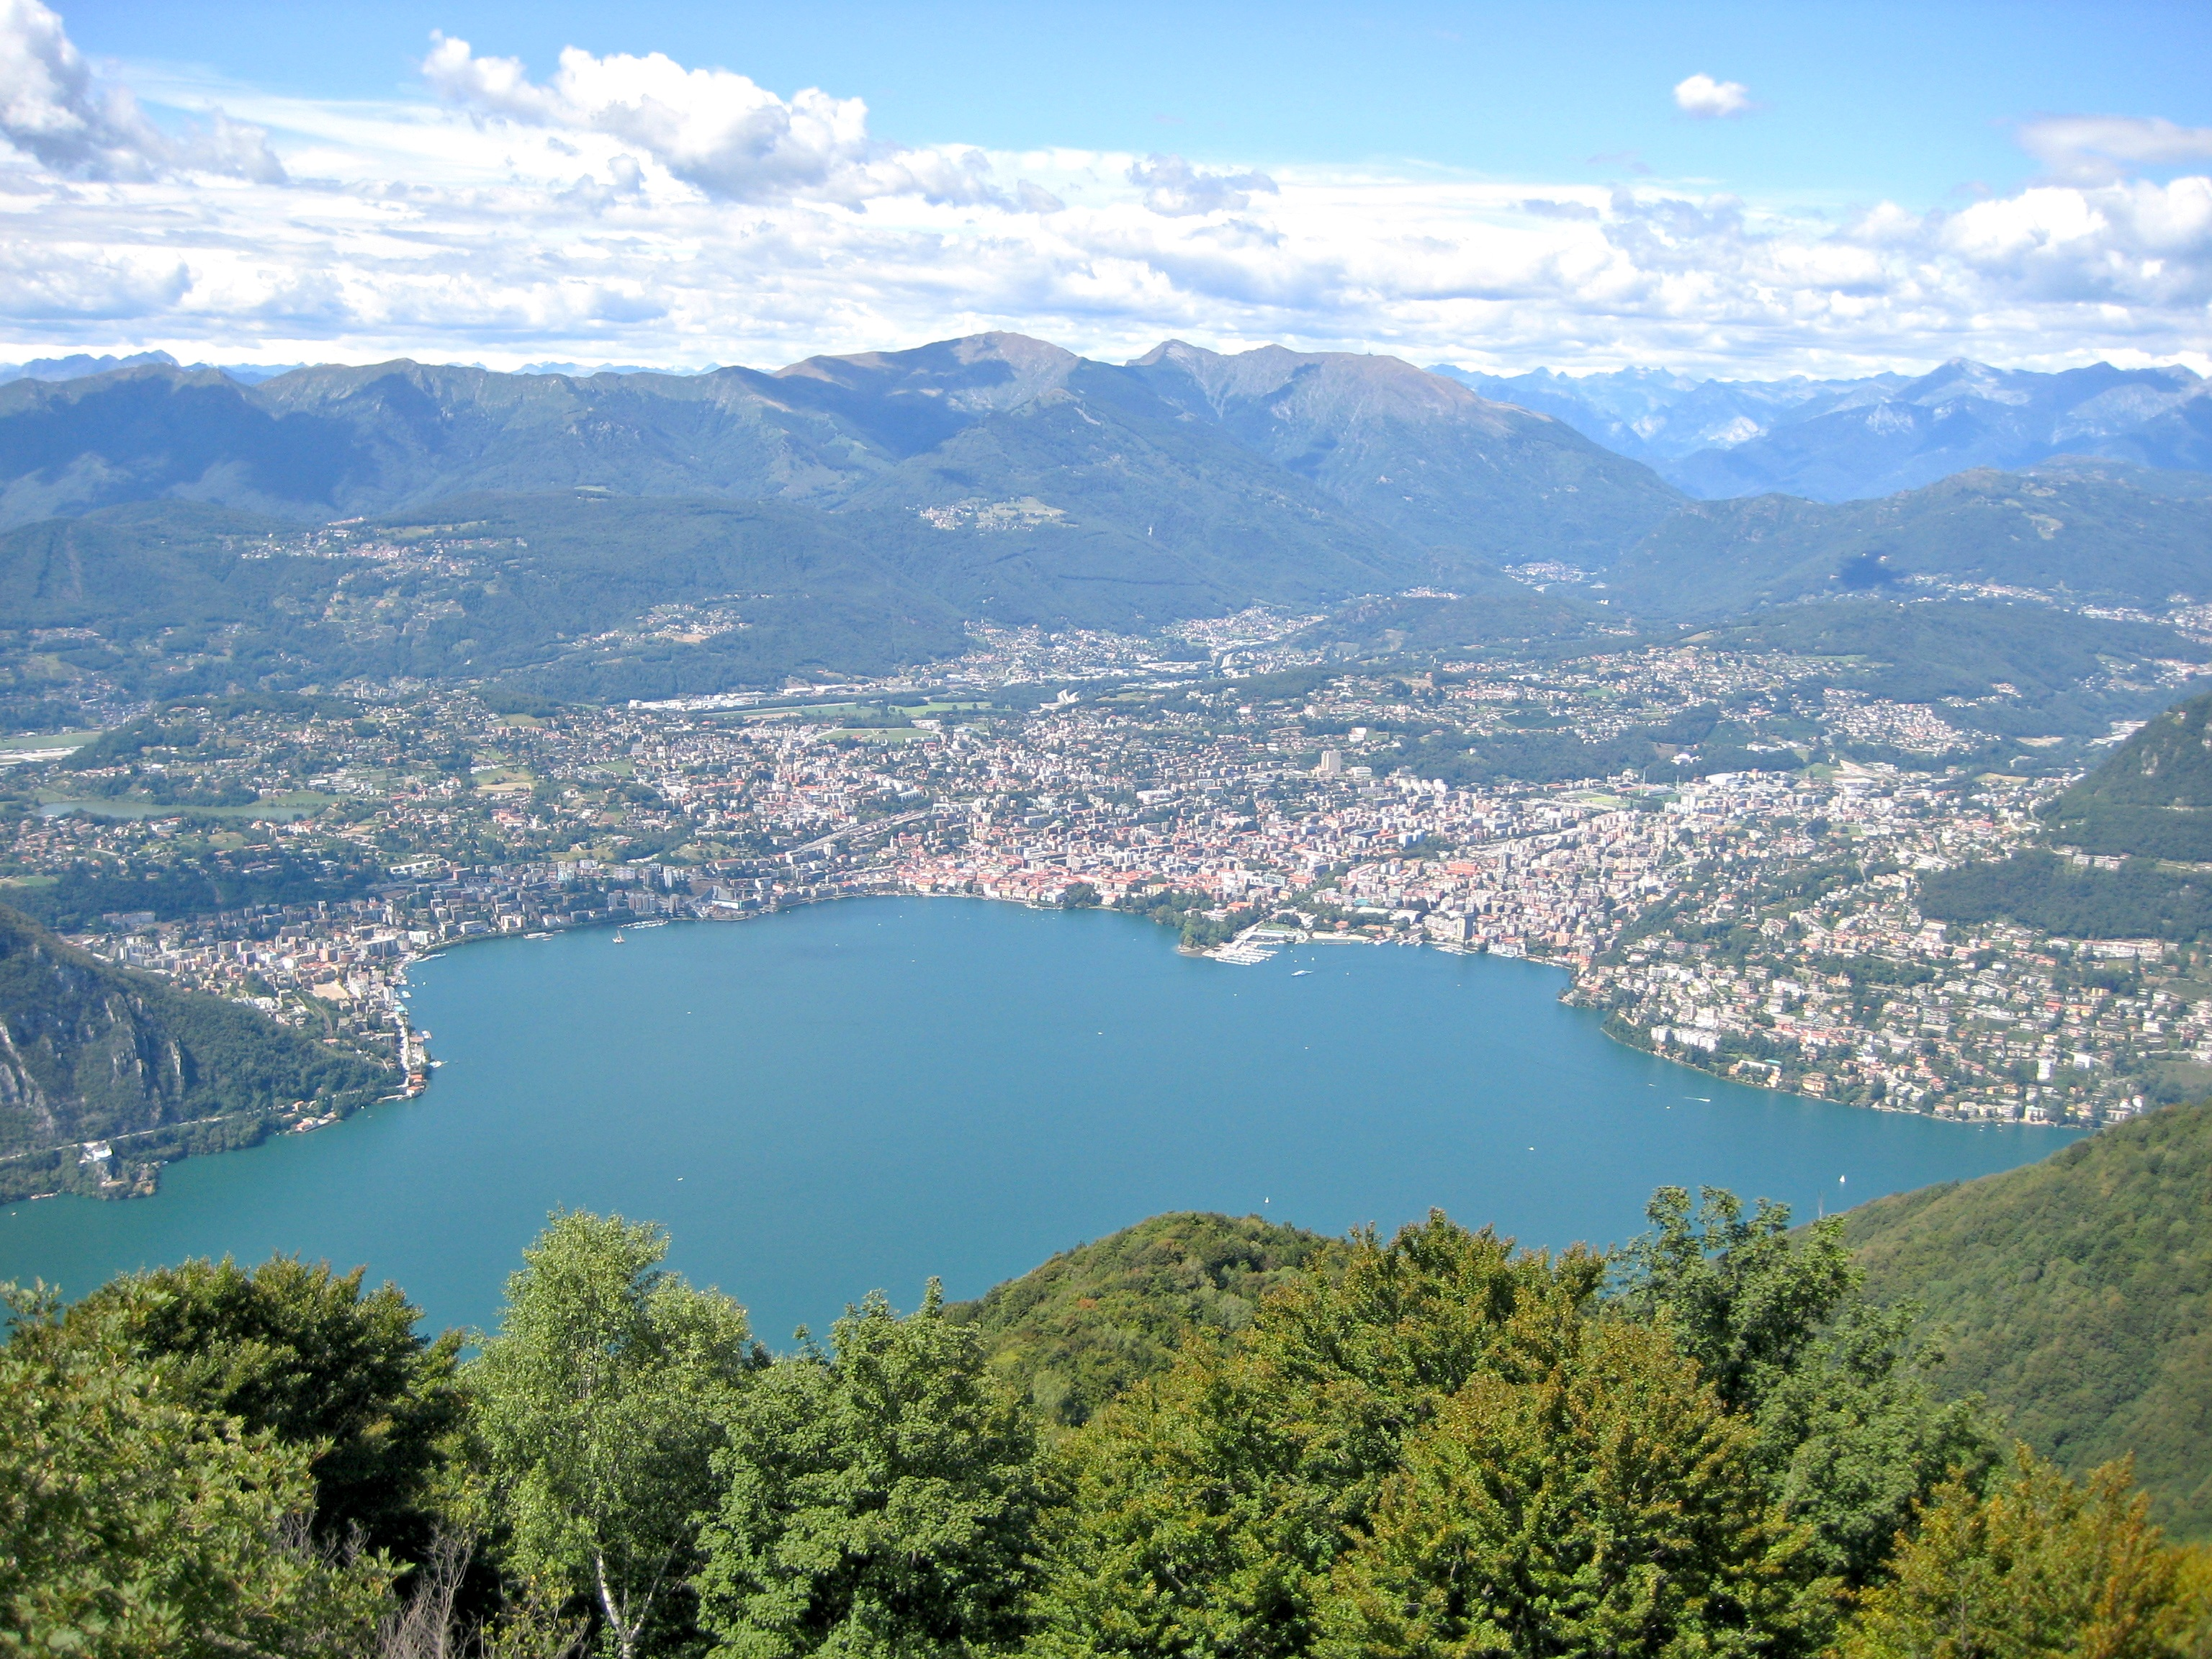 View of Lugano (from Wikimedia Commons)